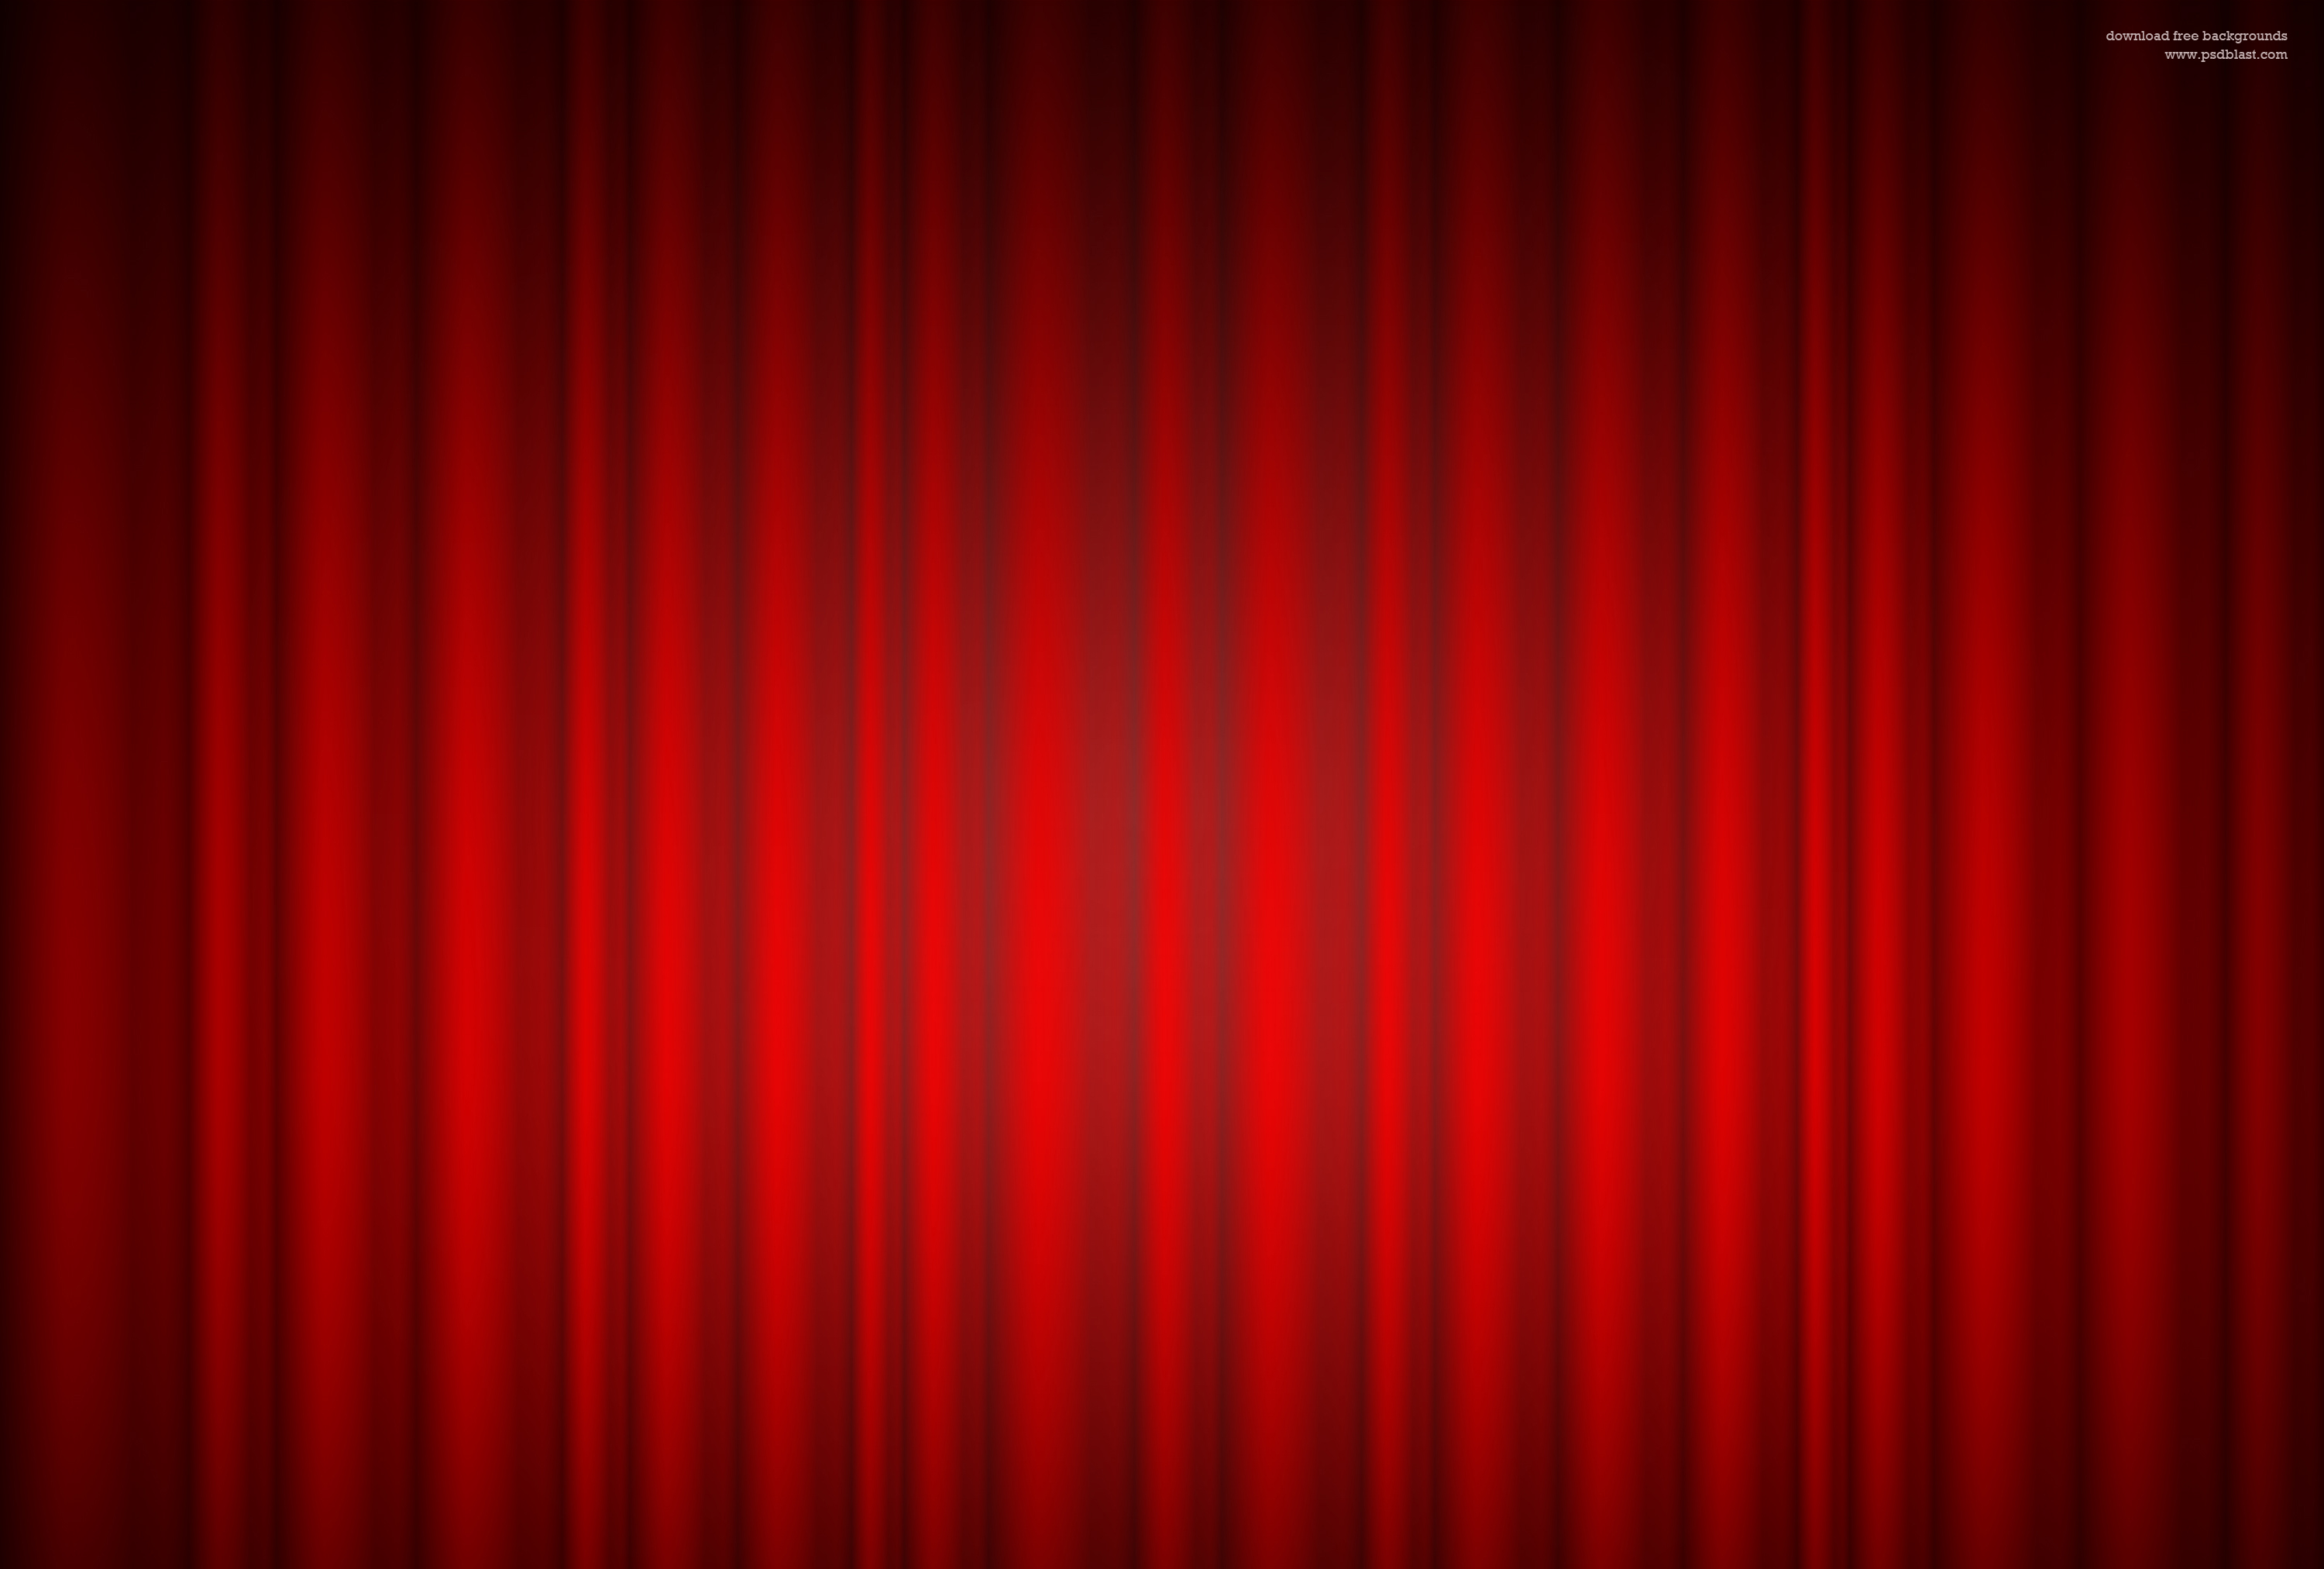 Red curtain red curtain background jpg